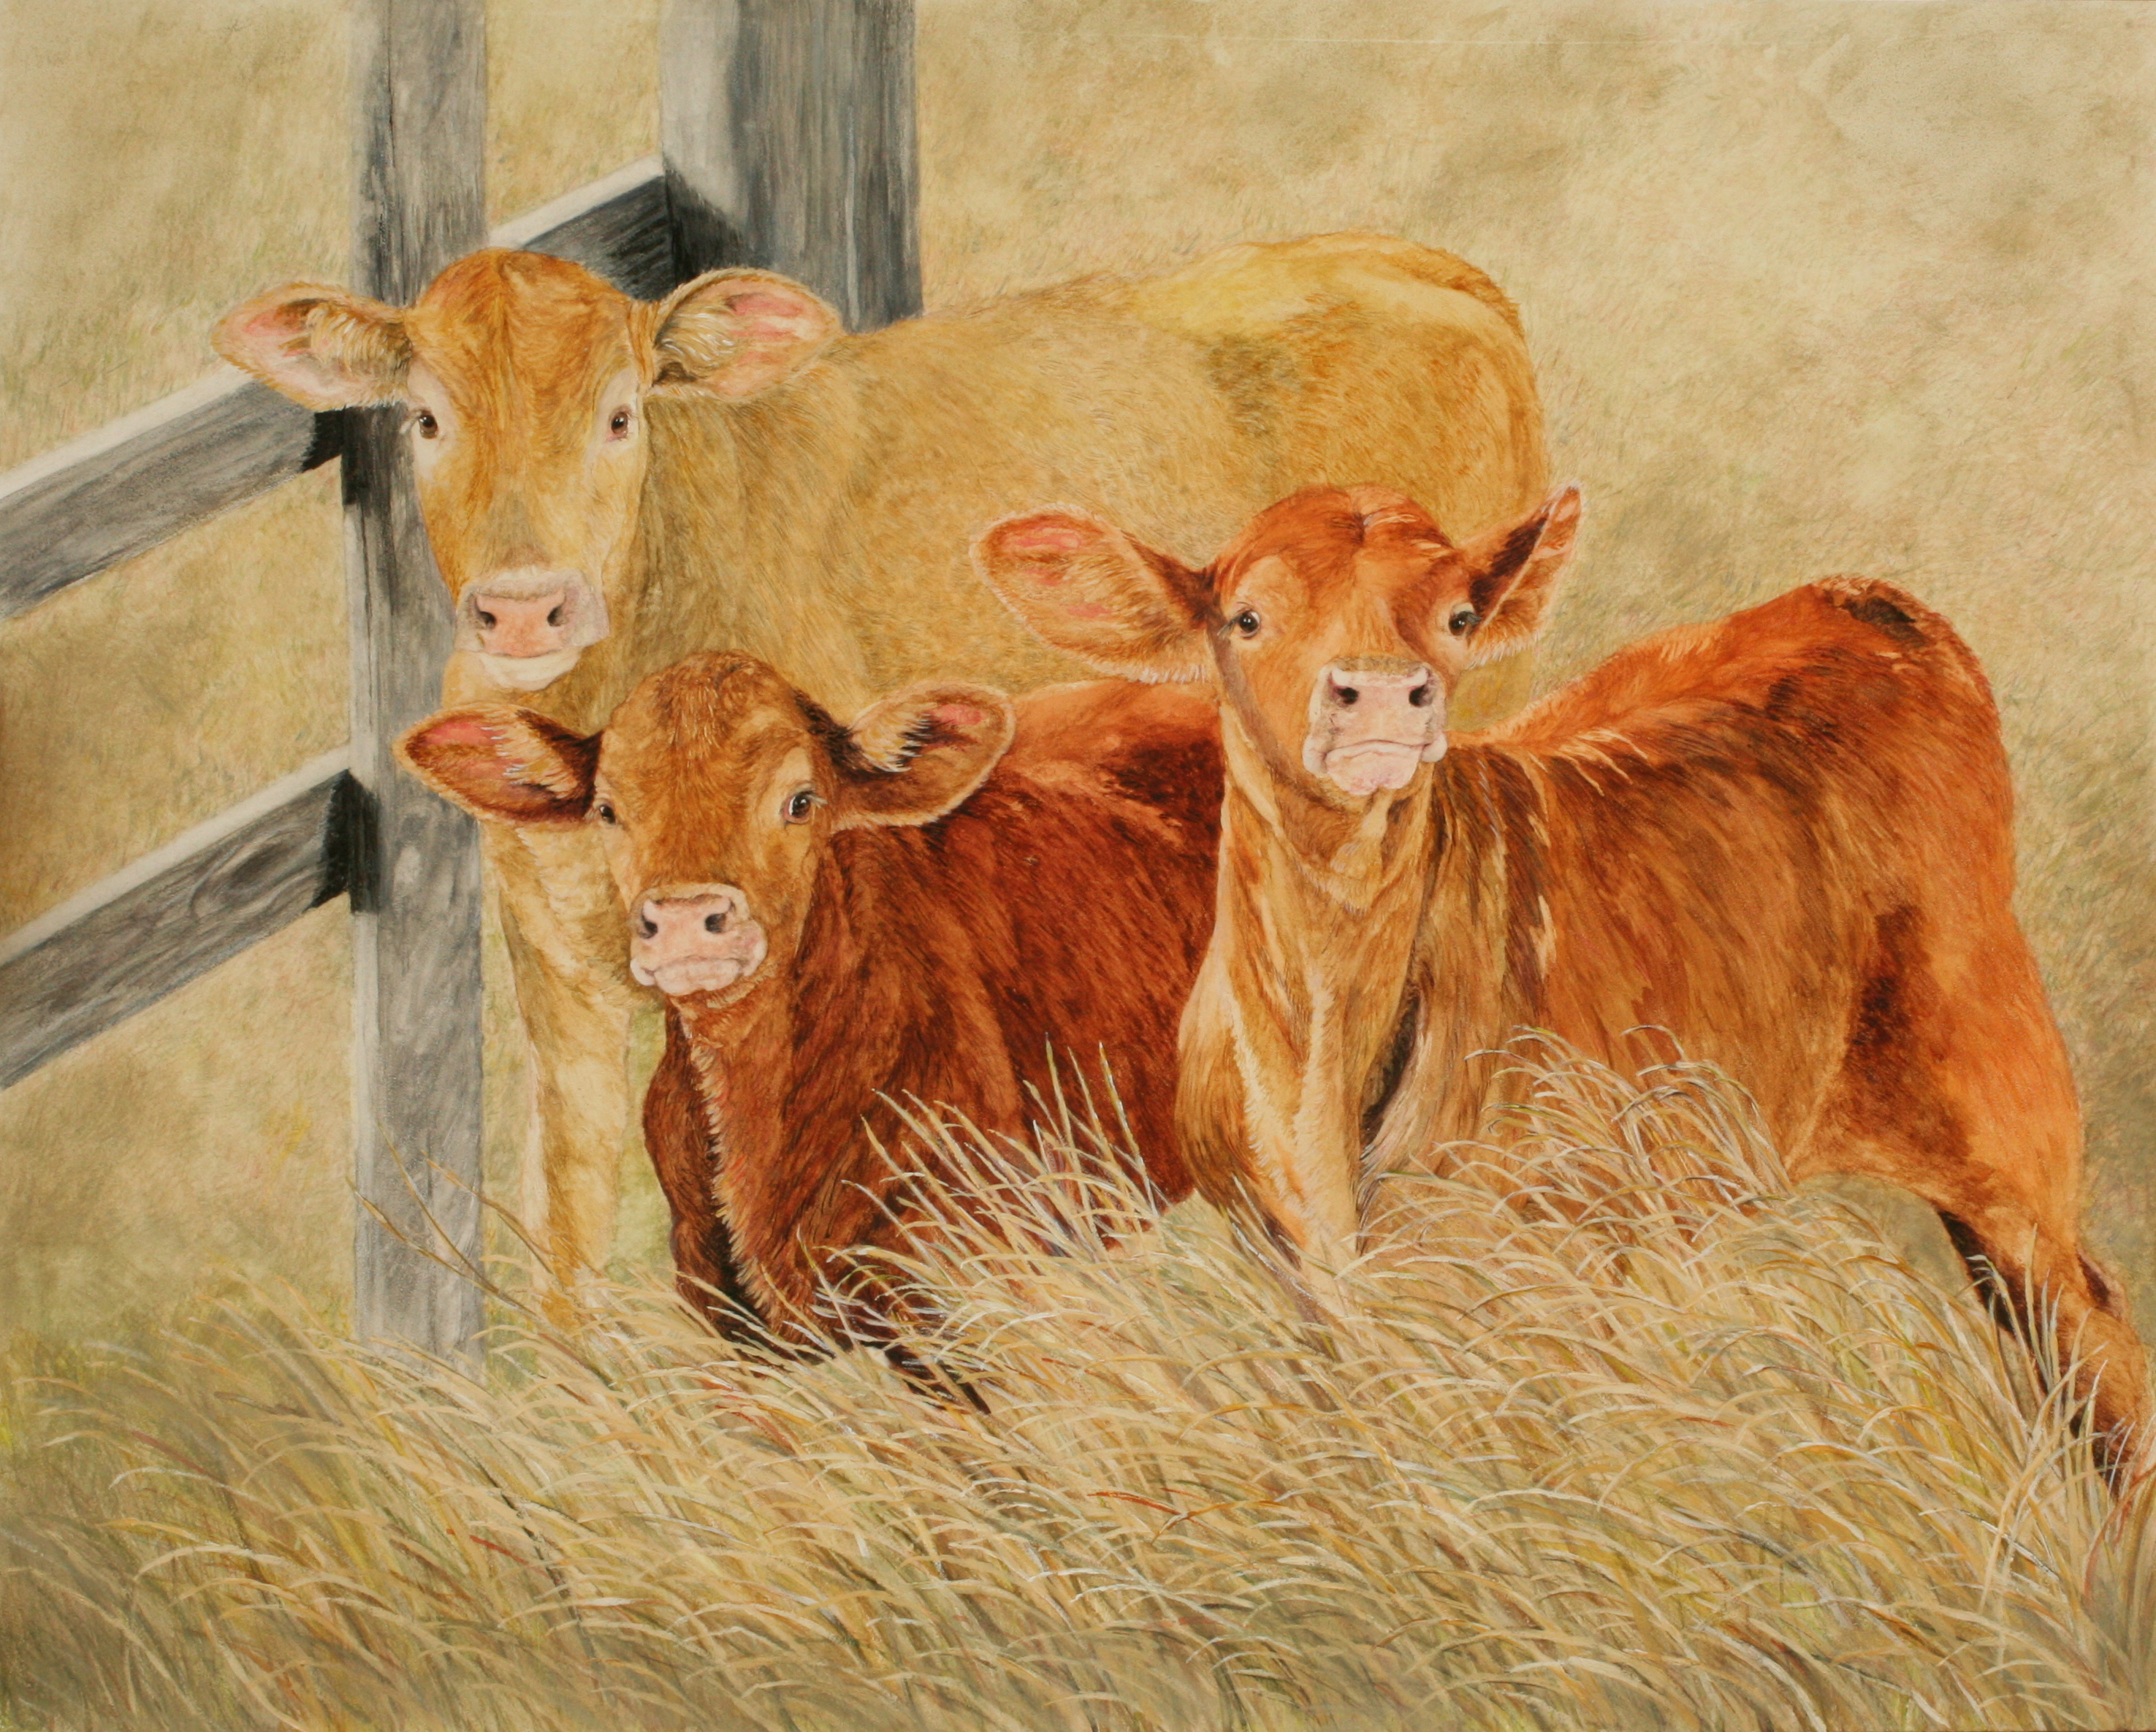 cows | Dana Spring Parish - Artist